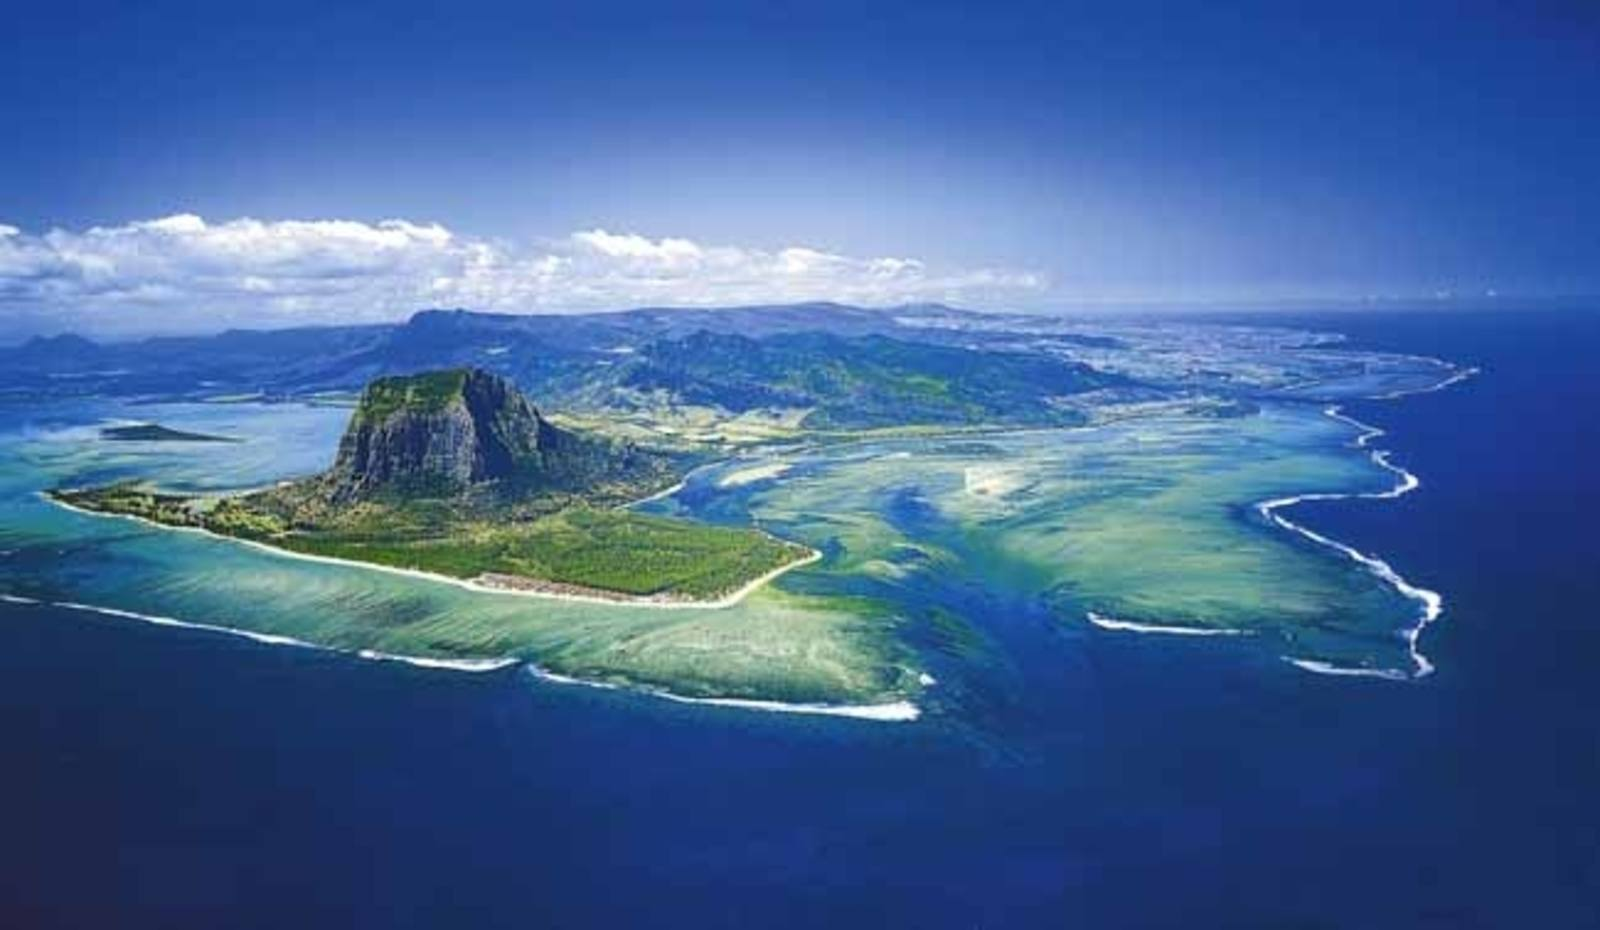 Aerial Photograph of Mauritius